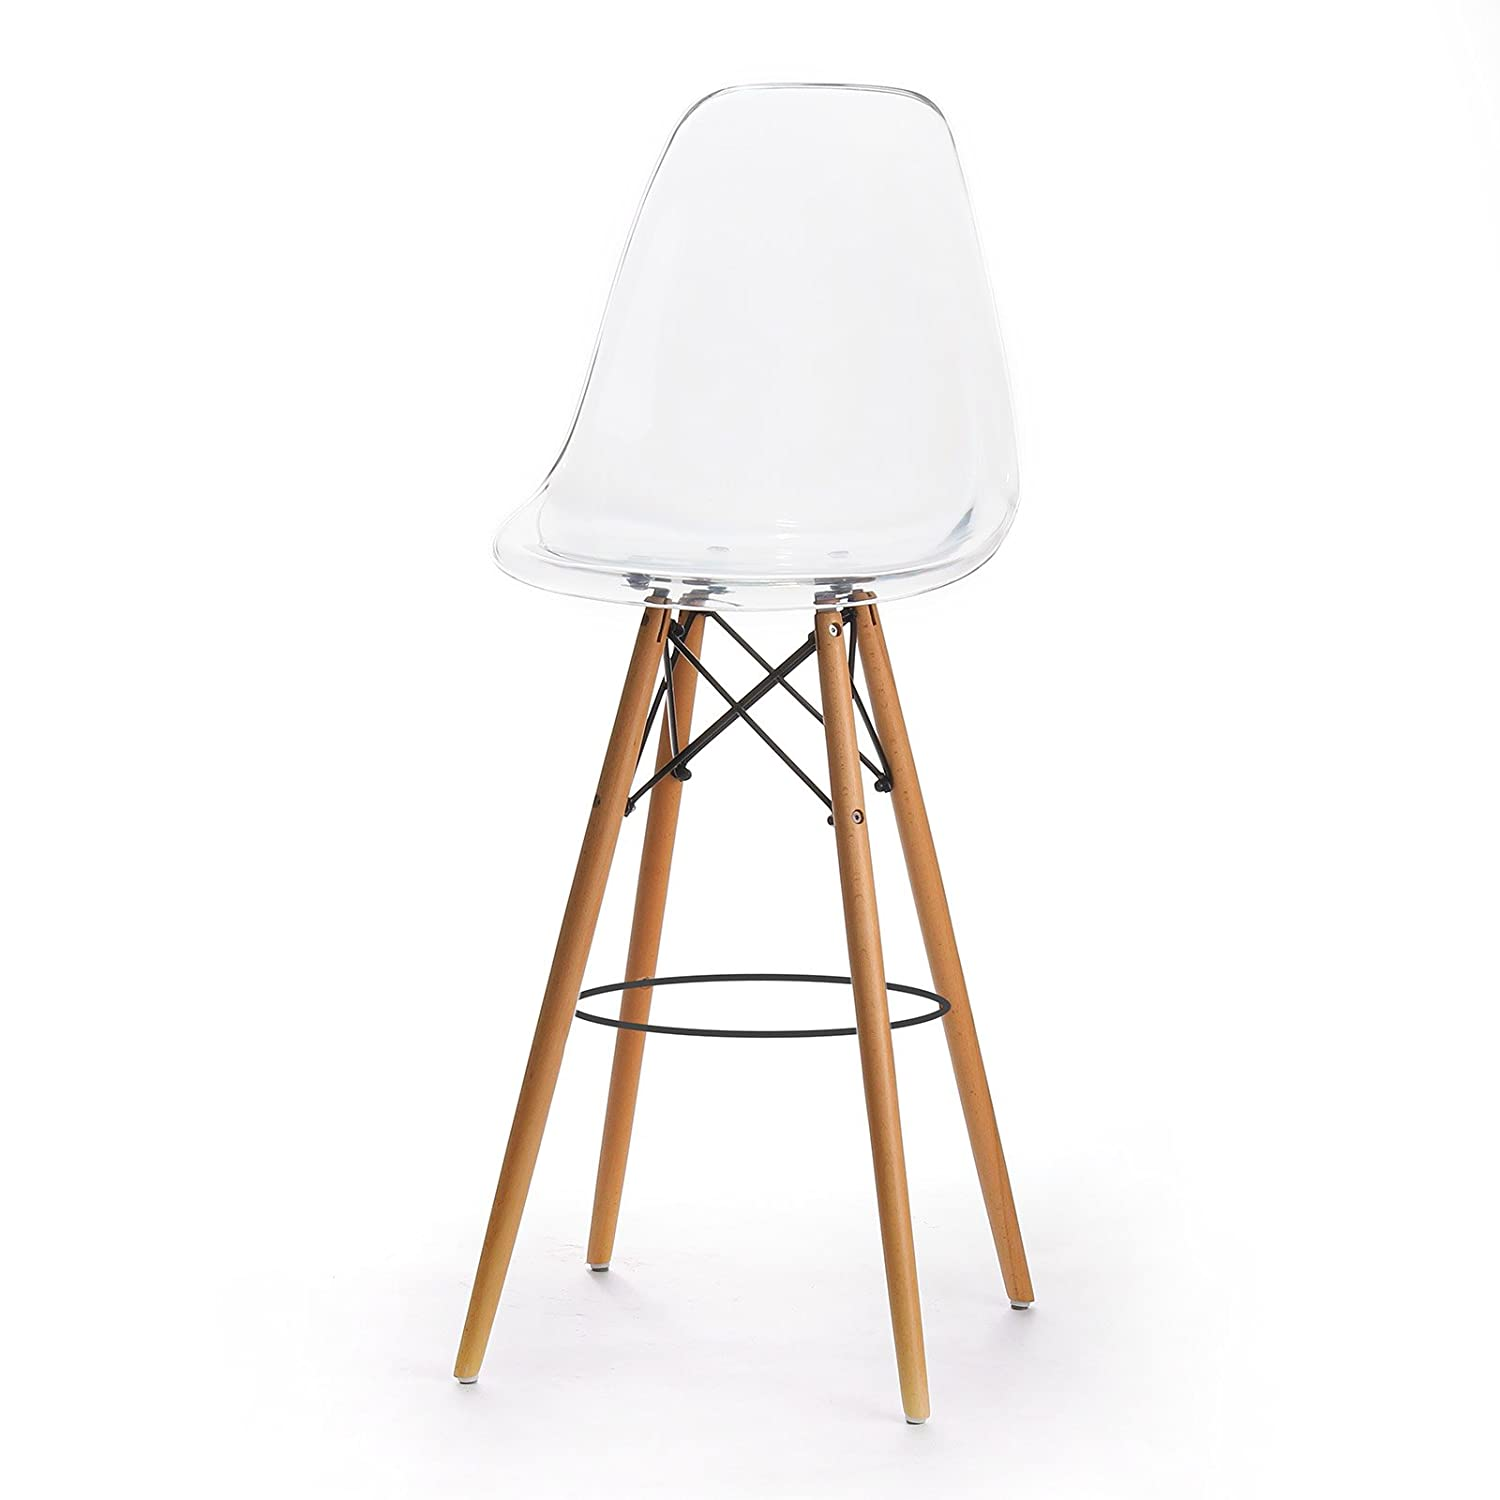 Etonnant Amazon.com: Design Tree Home Charles Eames Style DSW Bar Stool, Clear  Acrylic: Kitchen U0026 Dining